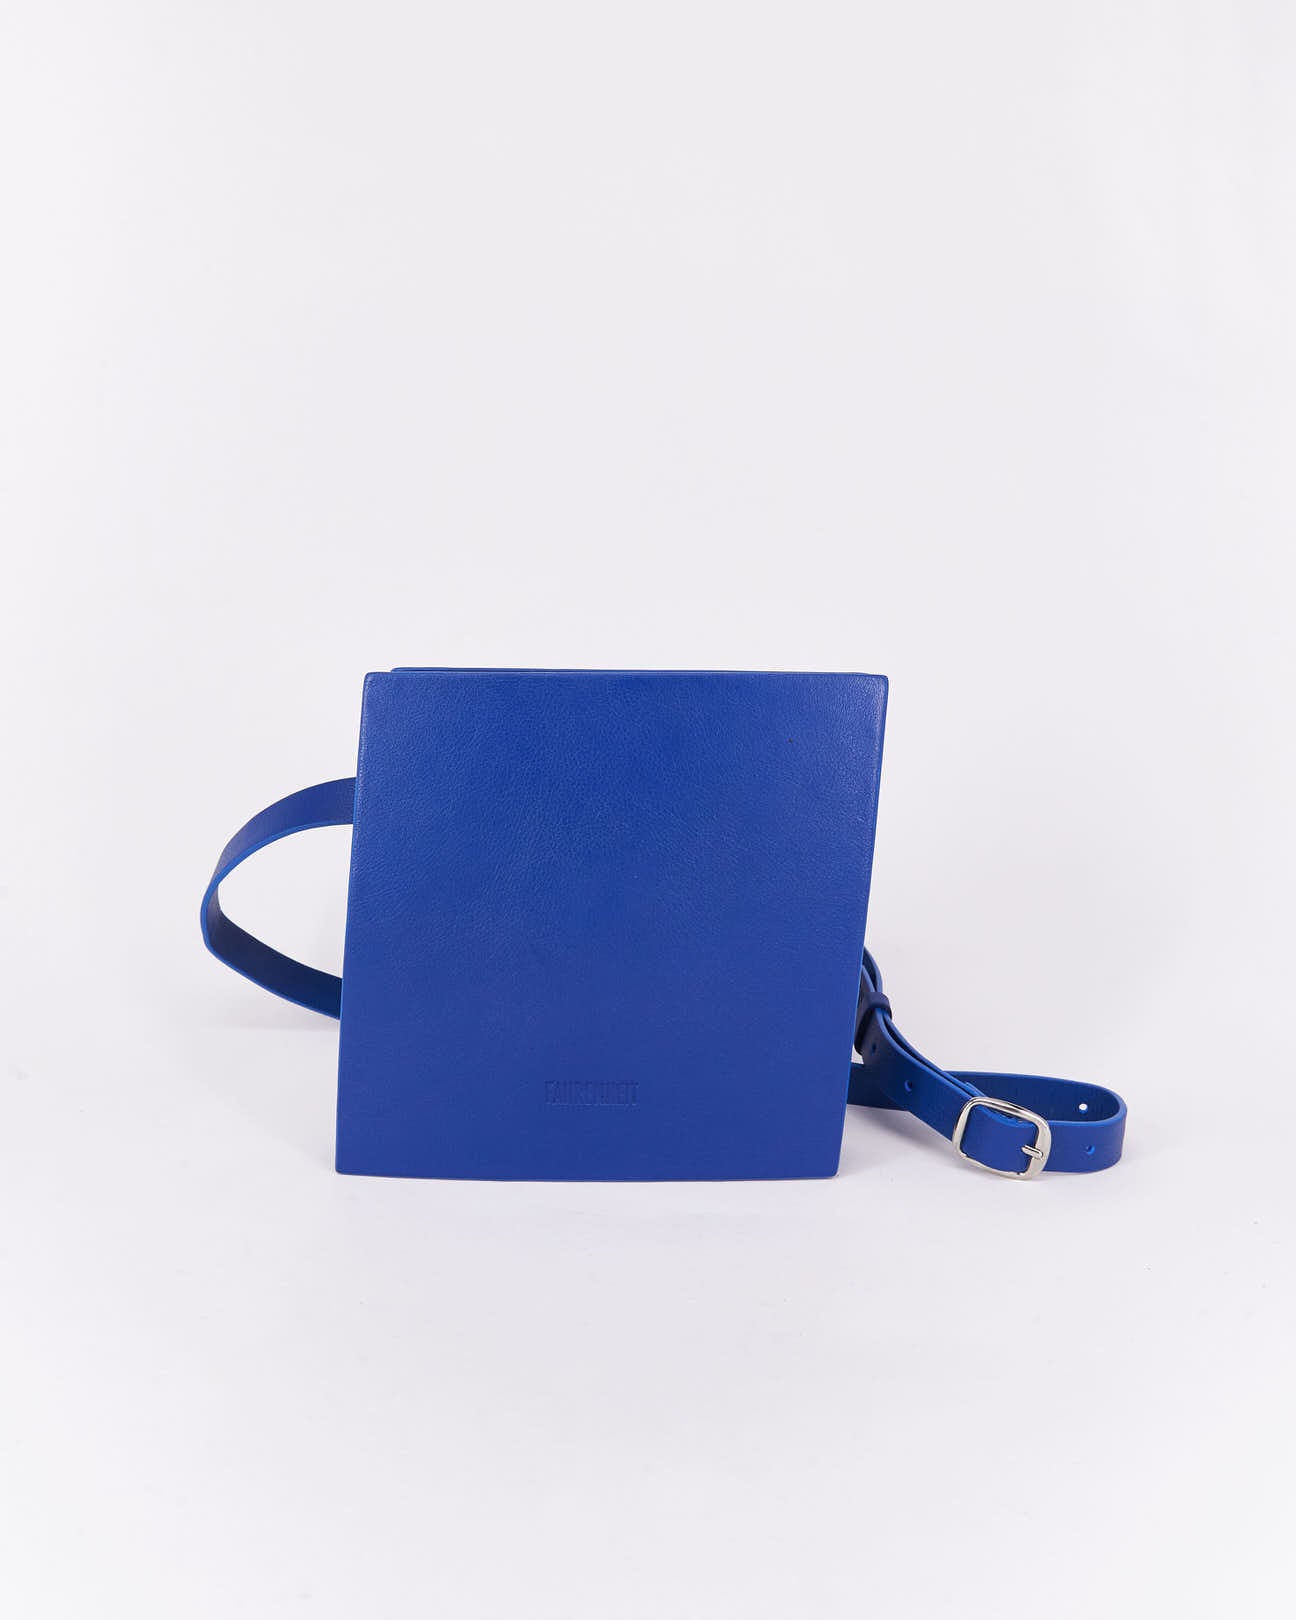 Bag-451-Fahrenheit-Blue-Leather-Handmade-Nuovum-Barcelona-localdesigners